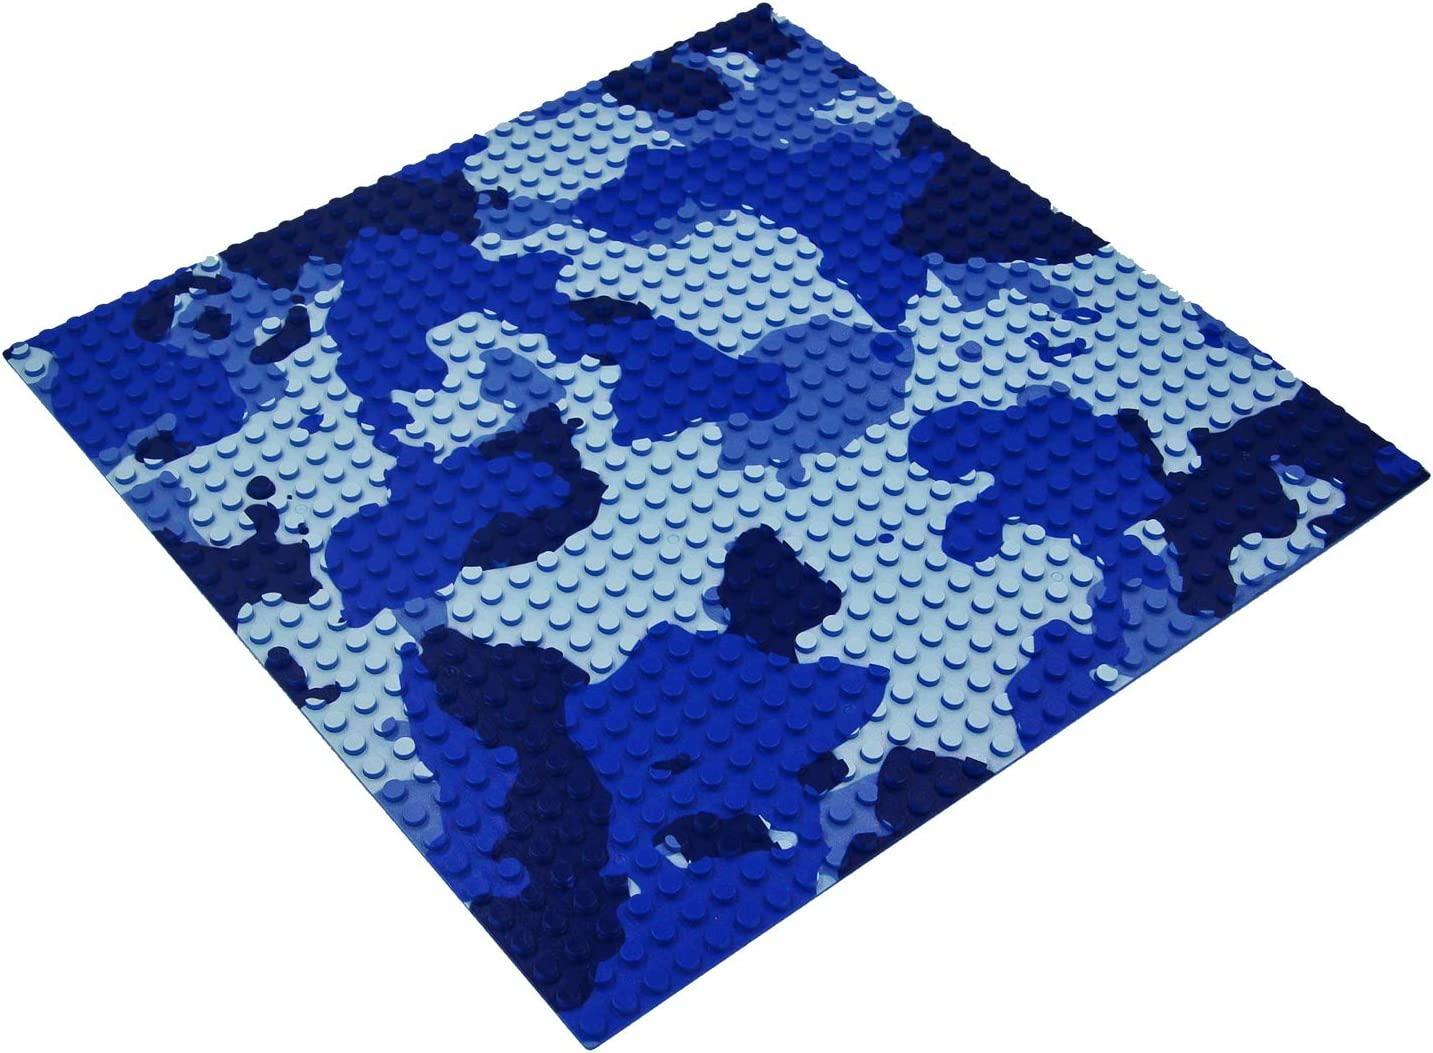 2pcs, Blue Camo 10 x 10 in Variety Color Compatible with Most Major Brands of Building Bricks BOROLA Classic Camouflage Building Base Block Plate